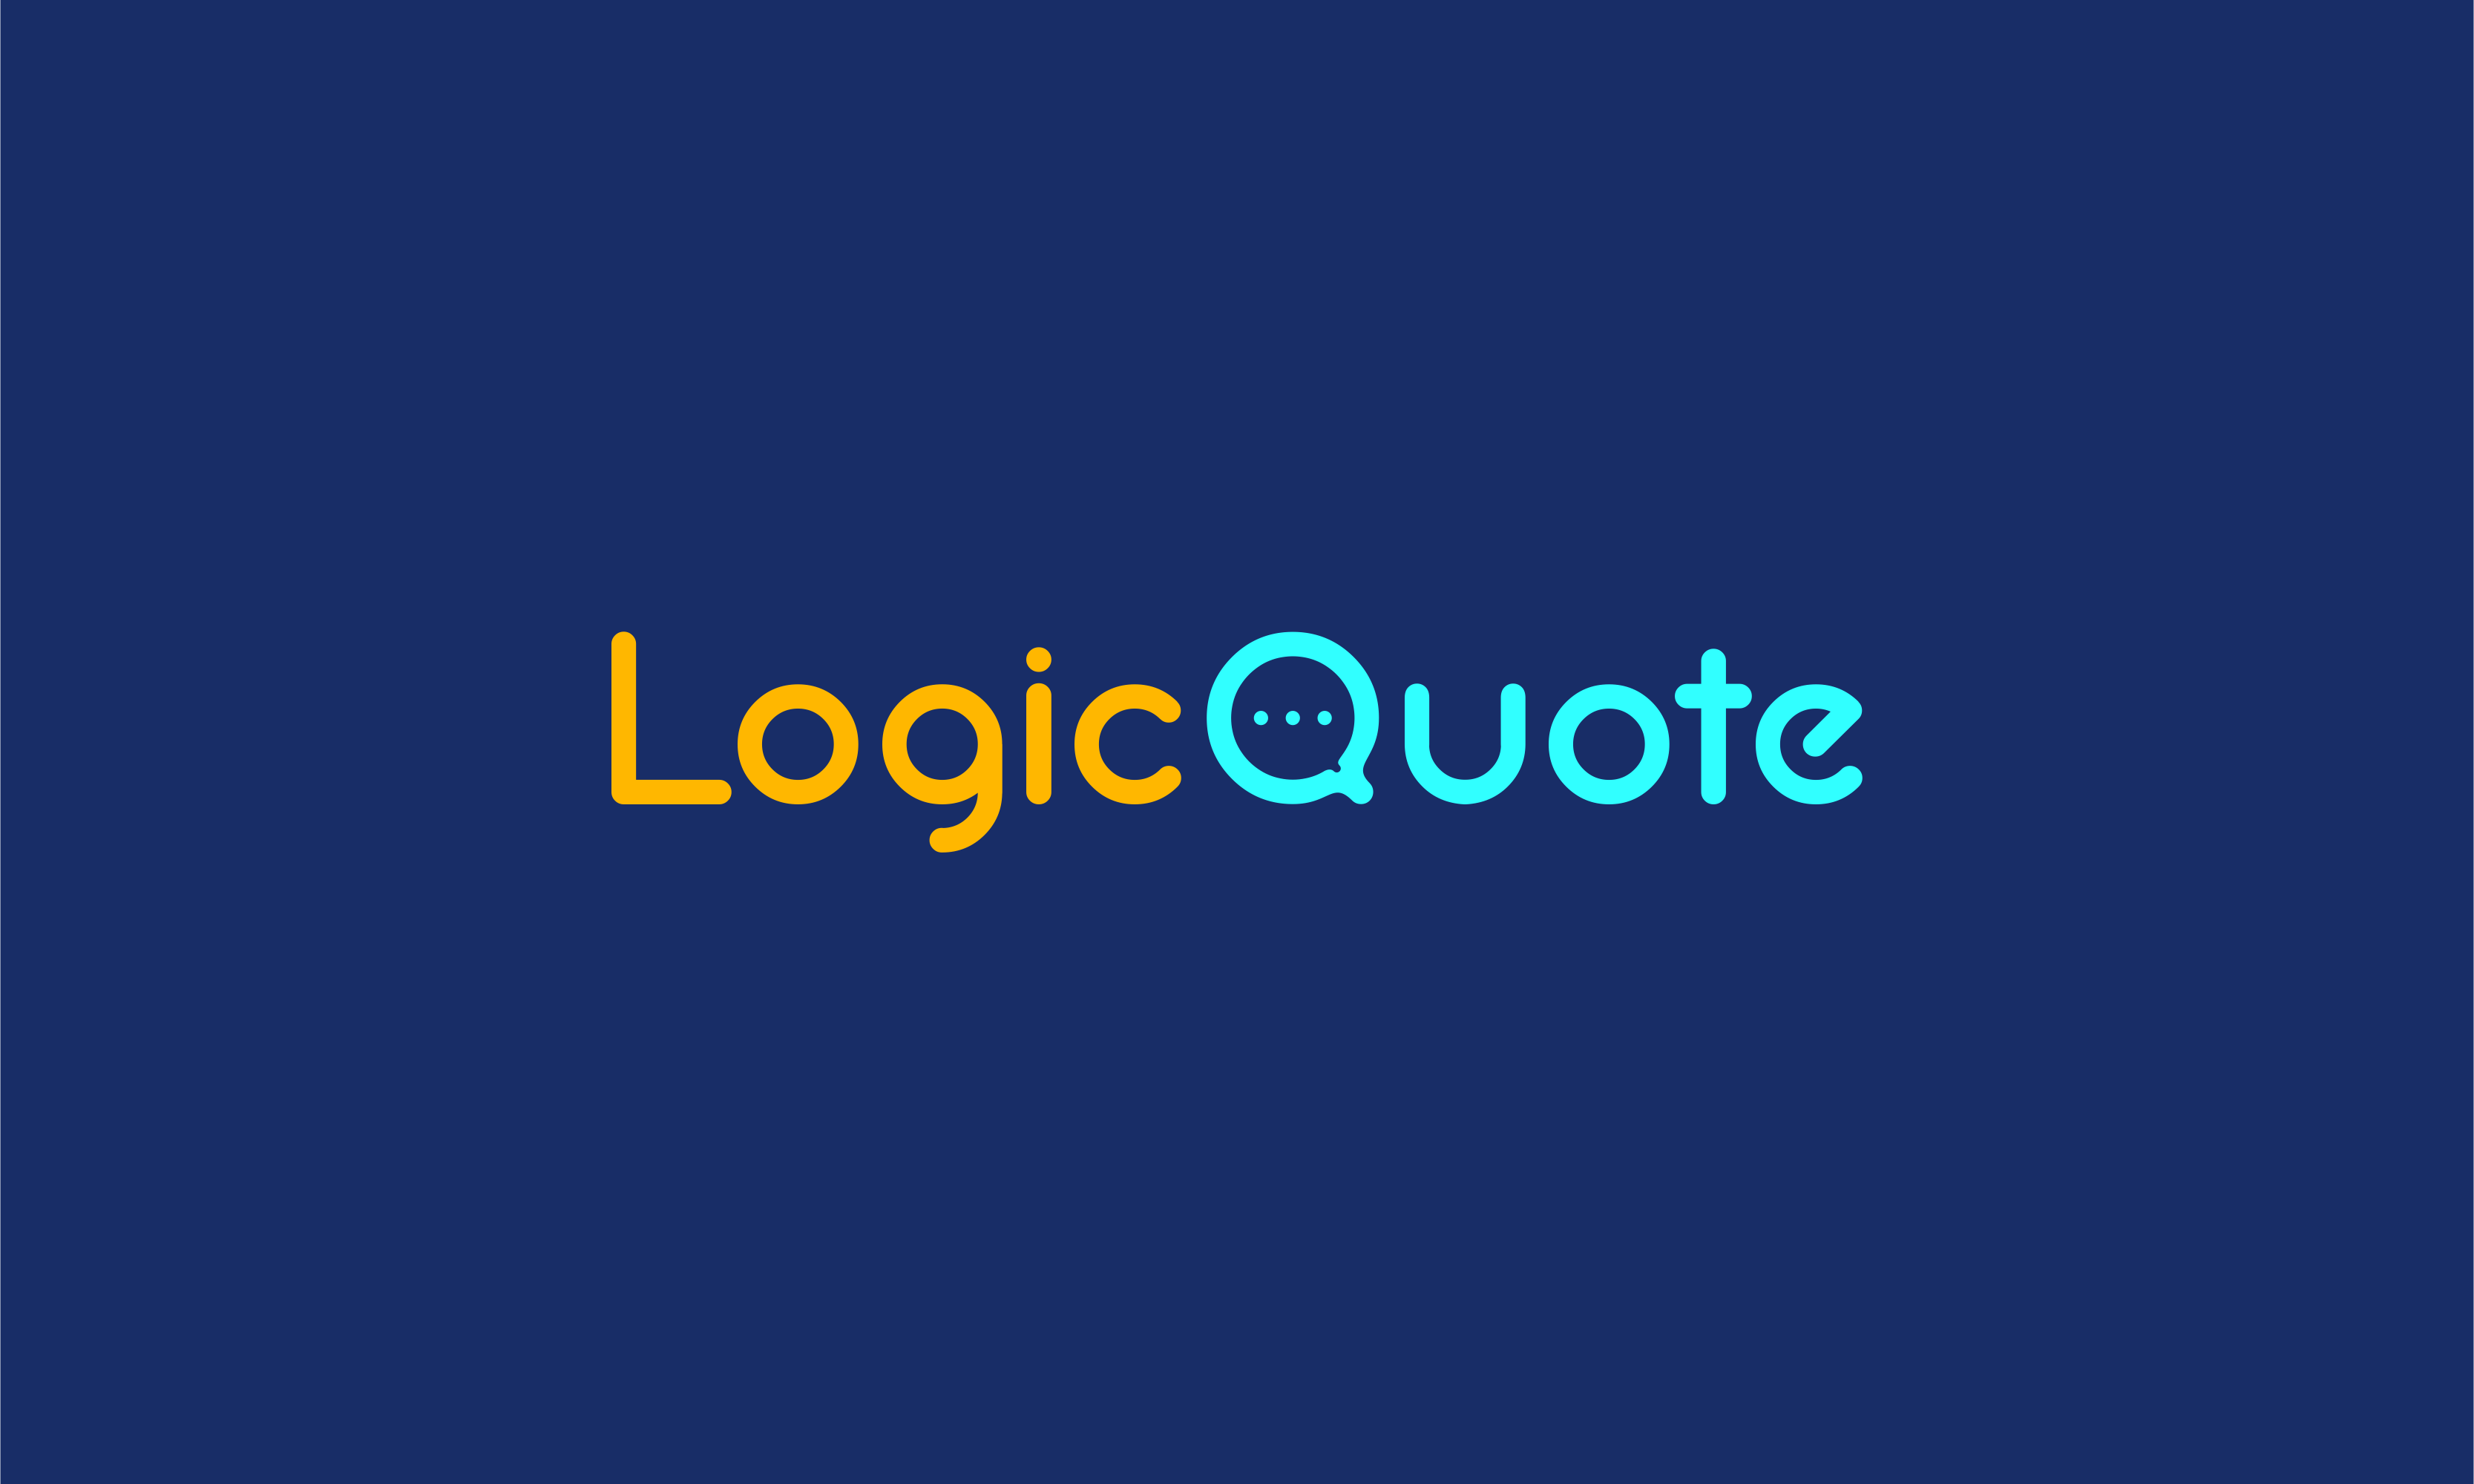 Logicquote - Logistics startup name for sale